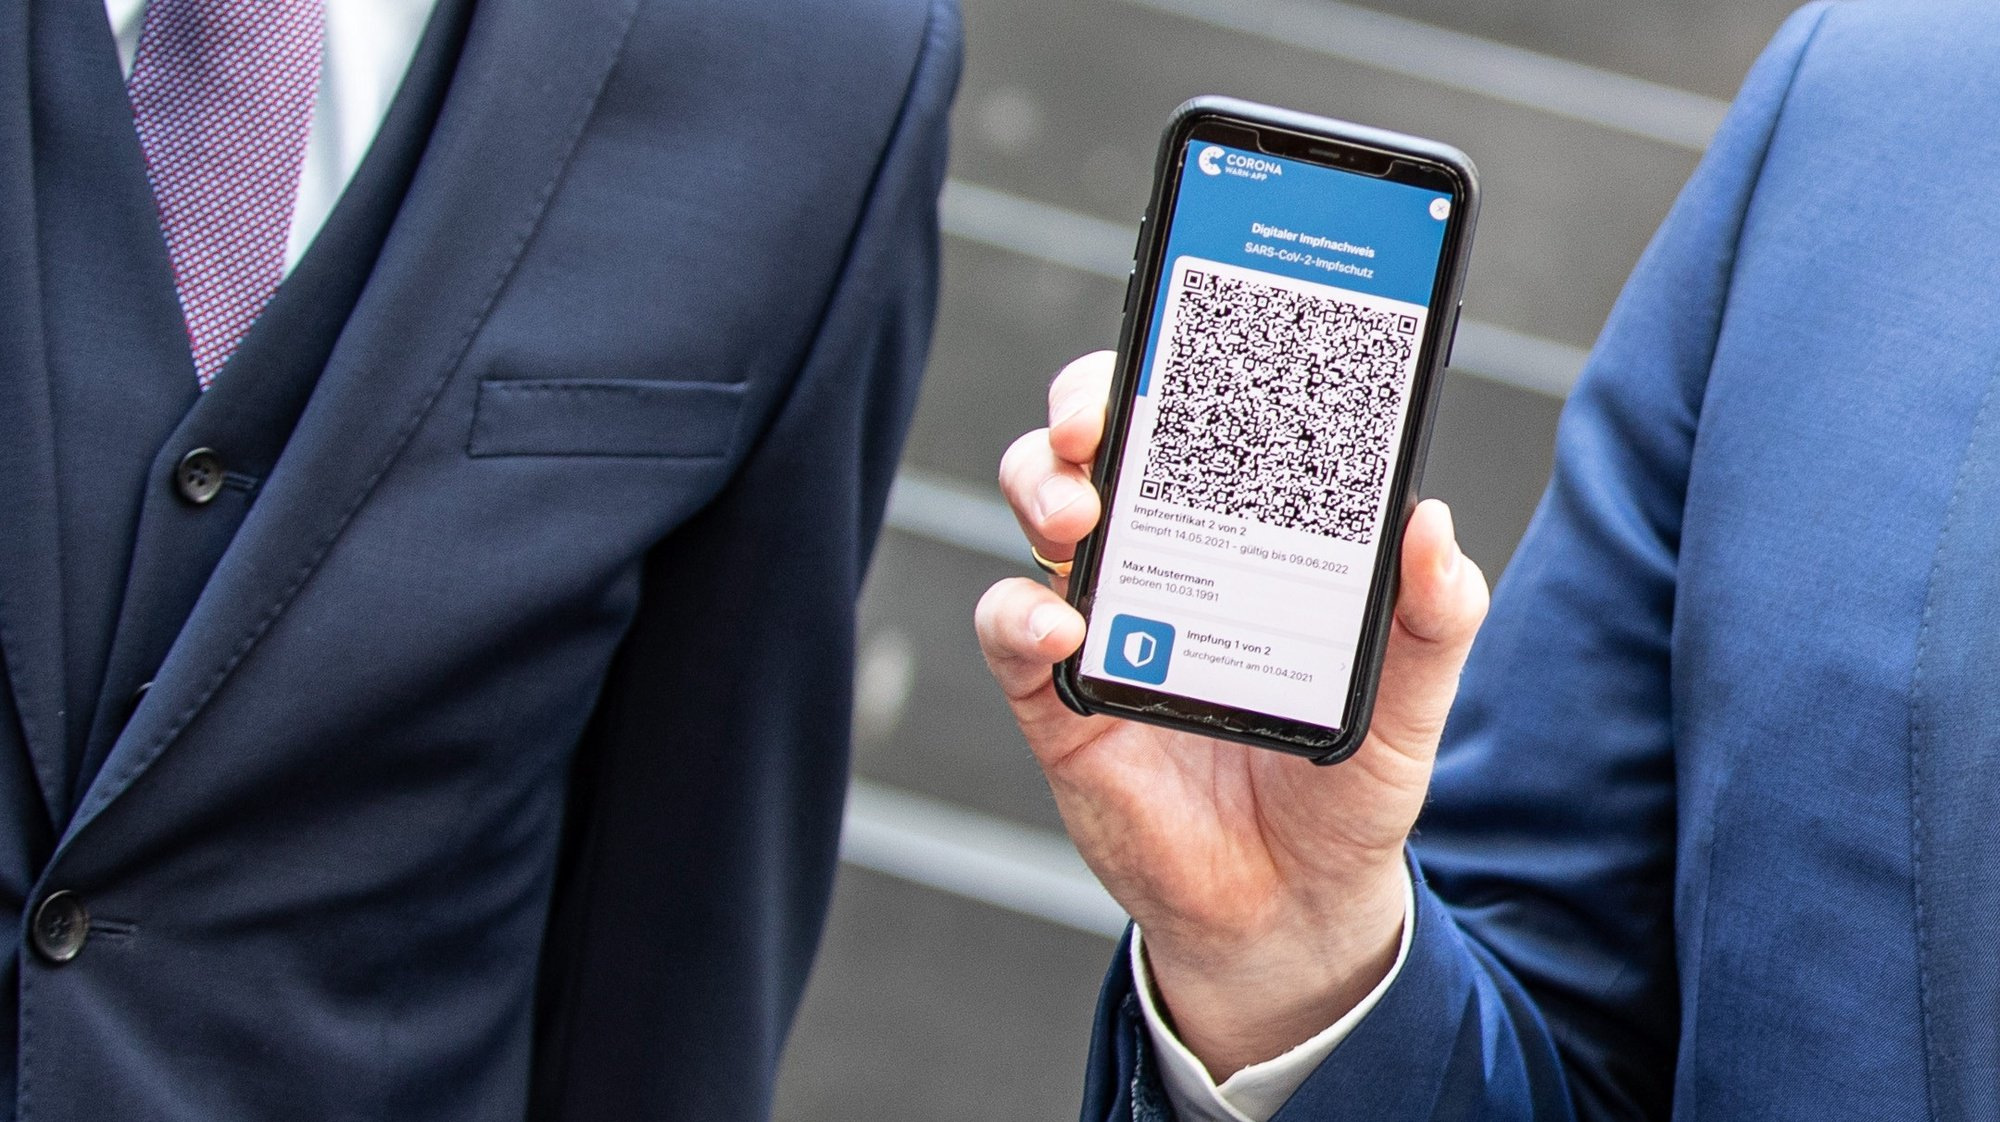 epa09259316 Smartphone with CivPass App and QR-Code at Federal Press Conference on current  pandemic situation, in Berlin, Germany, 10 June 2021. Germany released CovPass App for smartphones that provides users with digital certificate of vaccination against covid-19 as well as details of test results and survived infections using QR code.  EPA/ANDREAS GORA / POOL